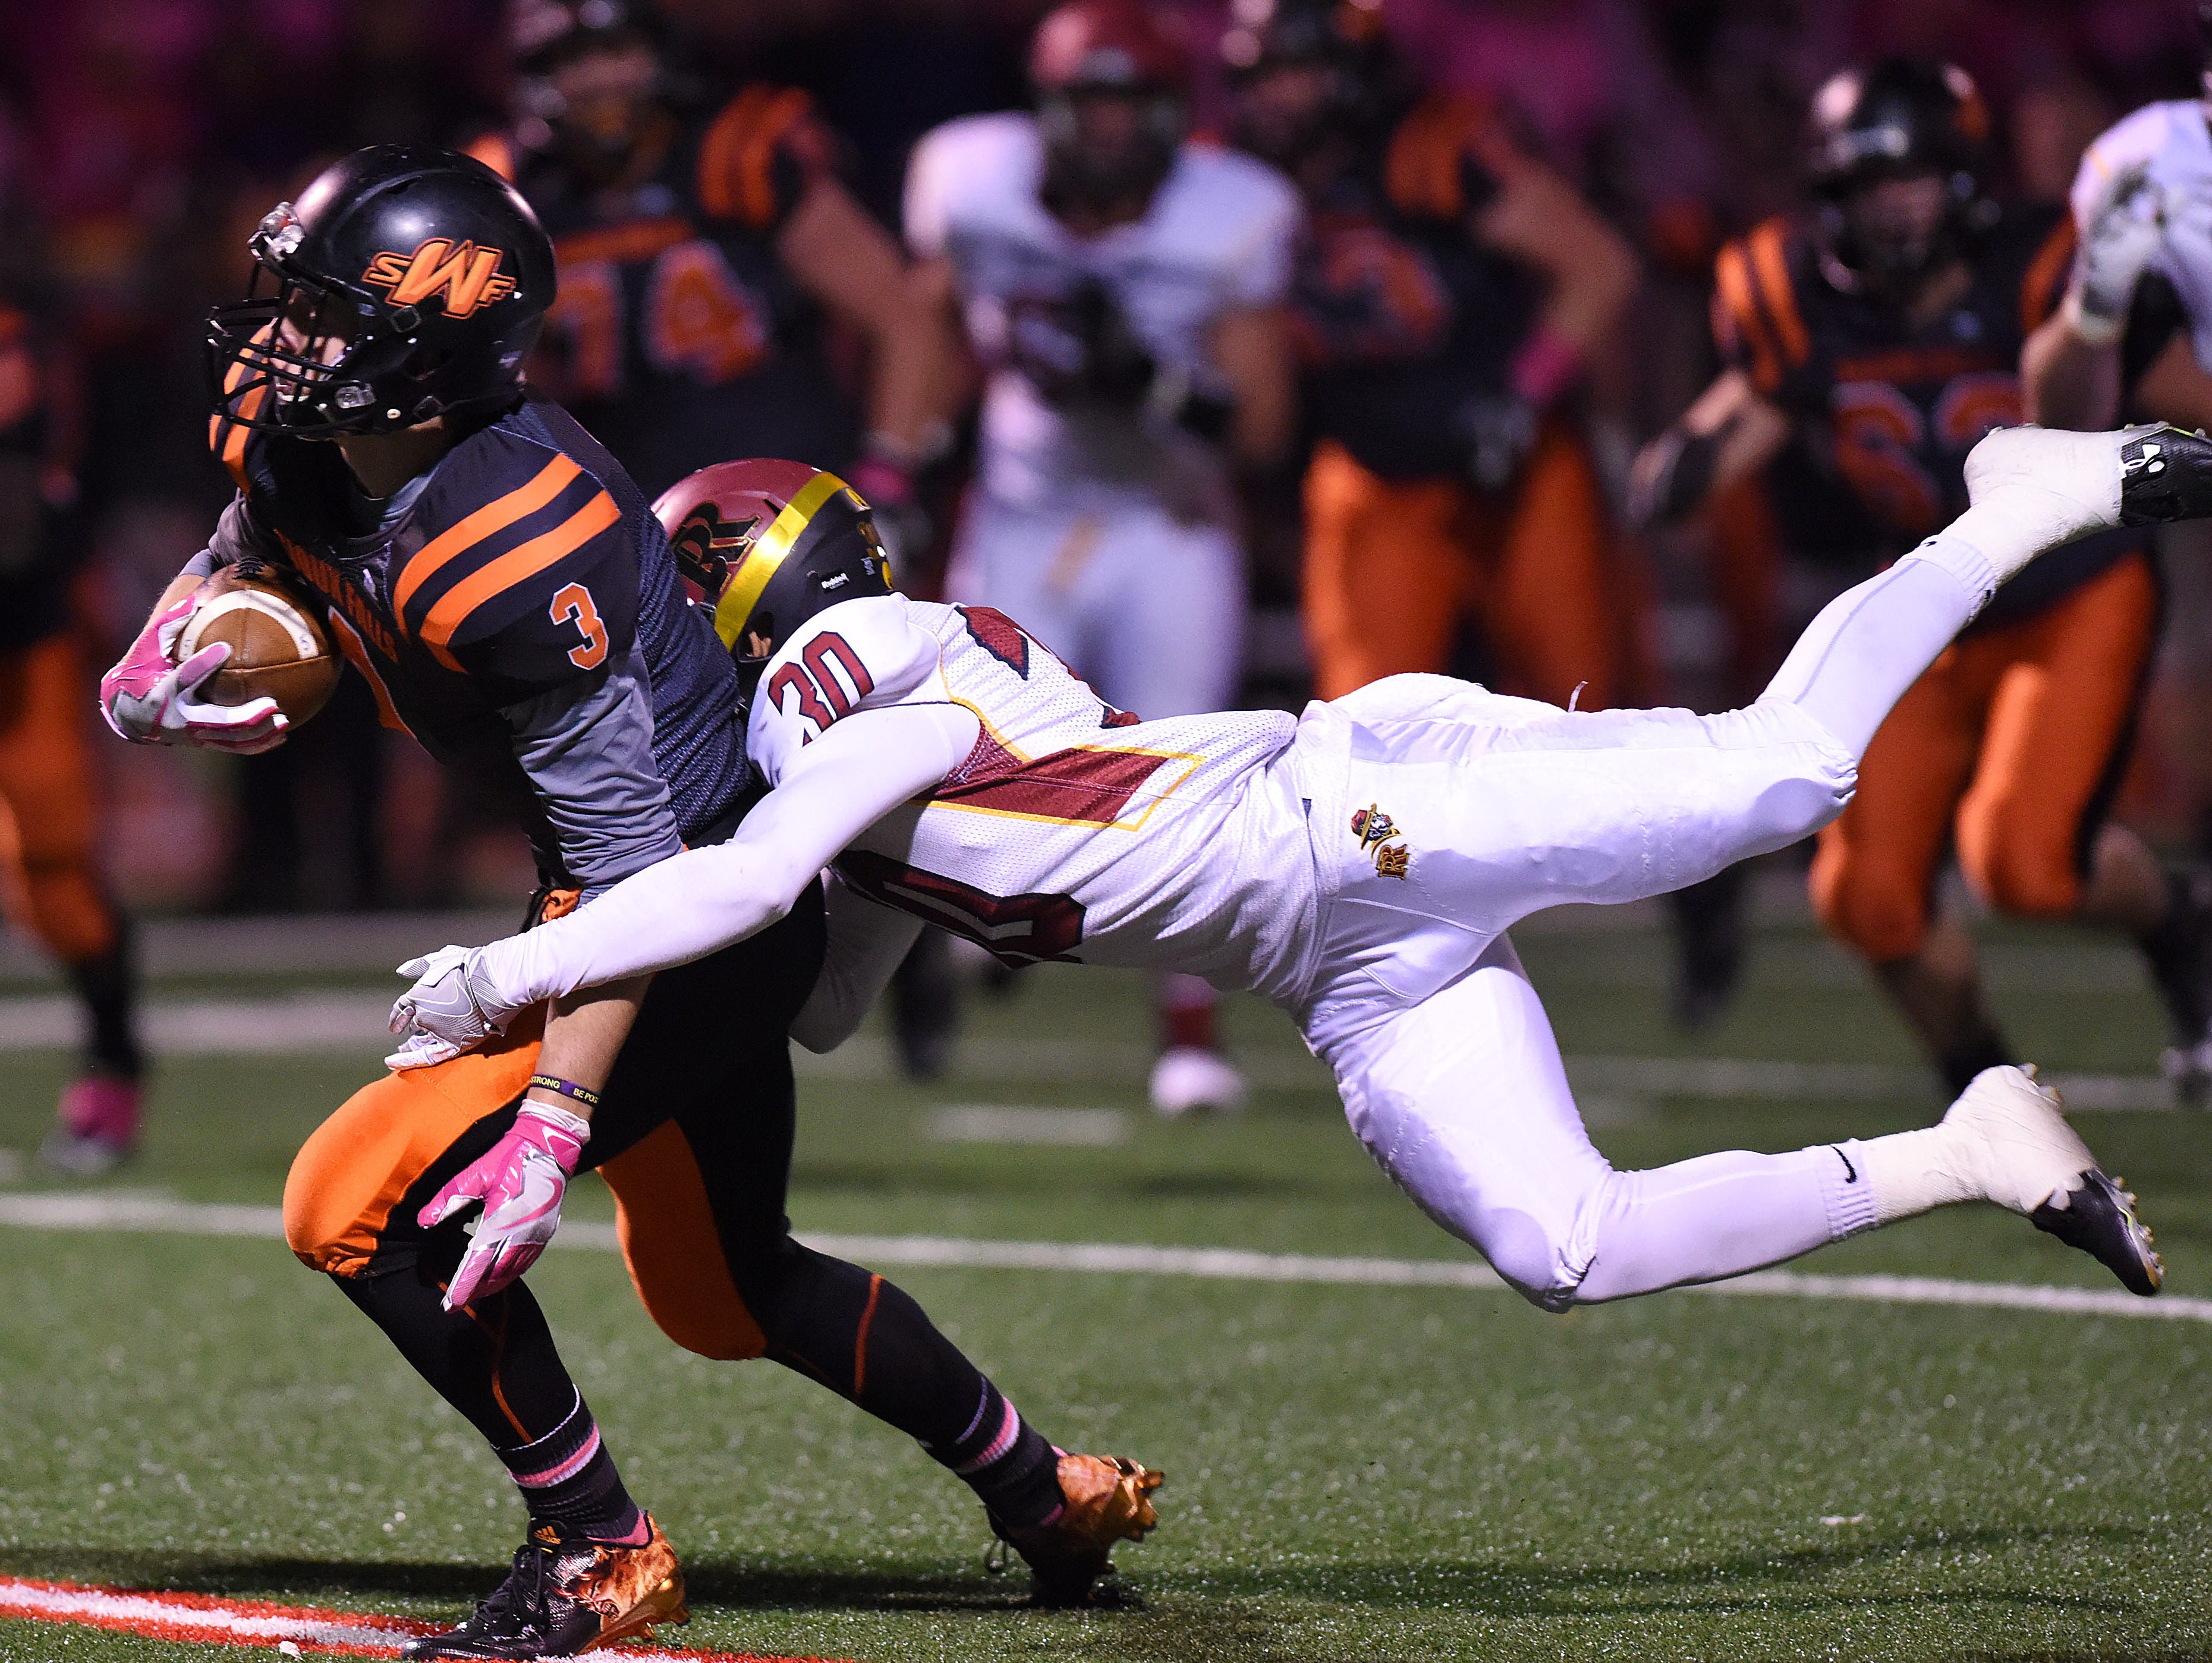 Washington's Logan Uttecht is tackled by Roosevelt's Dylan Garrow on Thursday at Howard Wood Field.